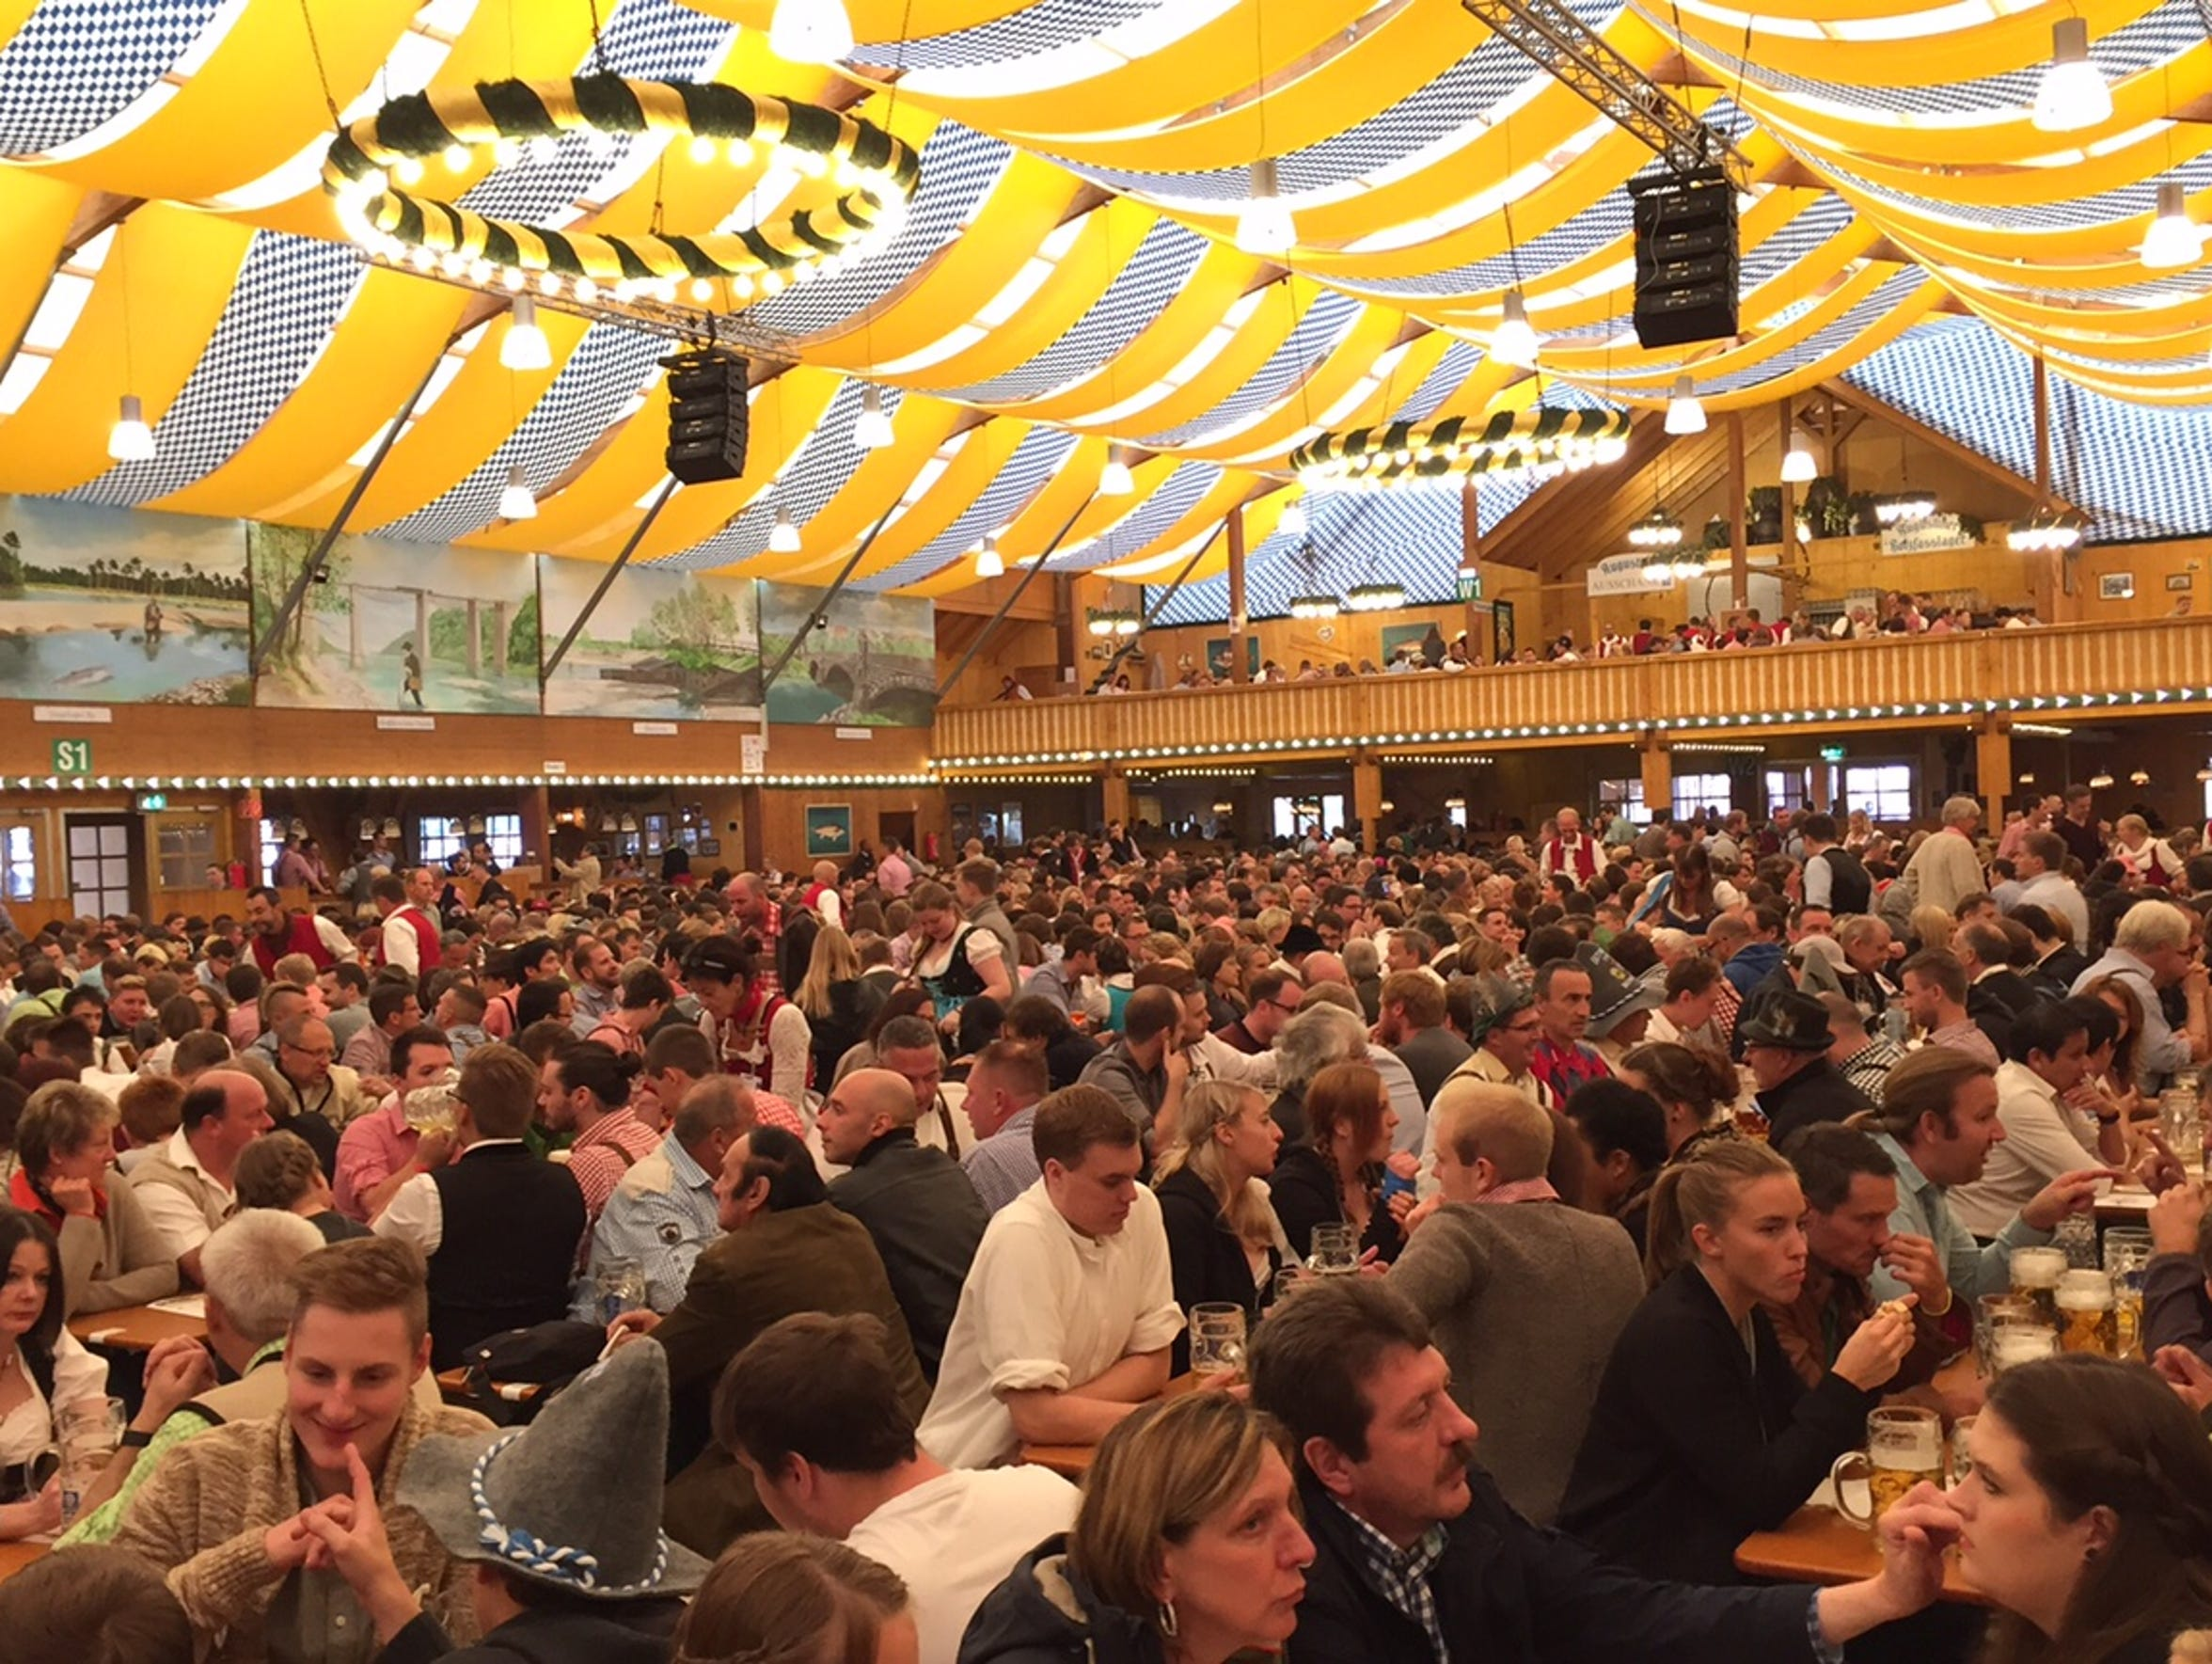 Munich, Germany, celebrates Oktoberfest.